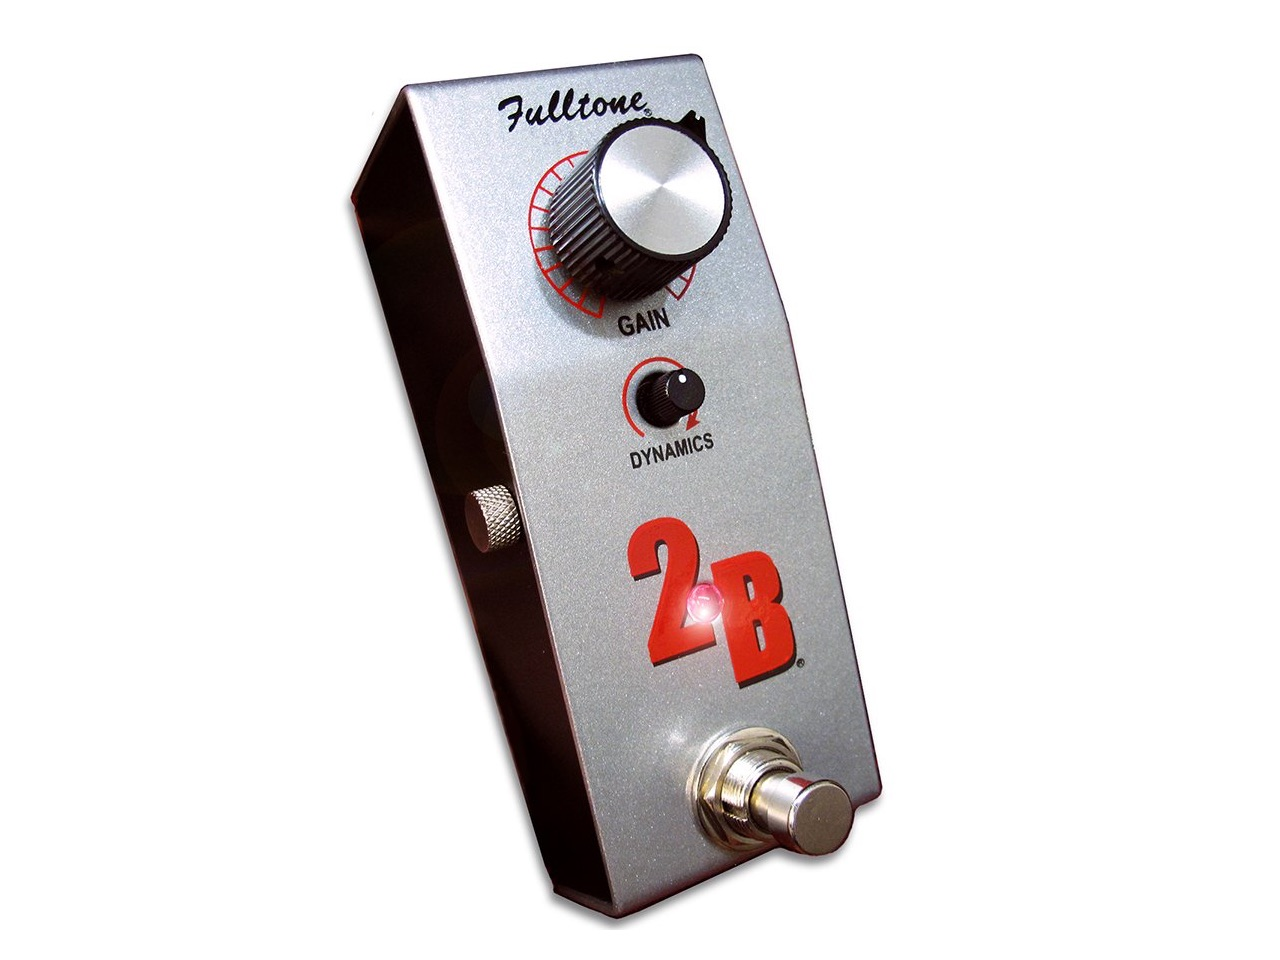 fulltone-2b-std-main_1